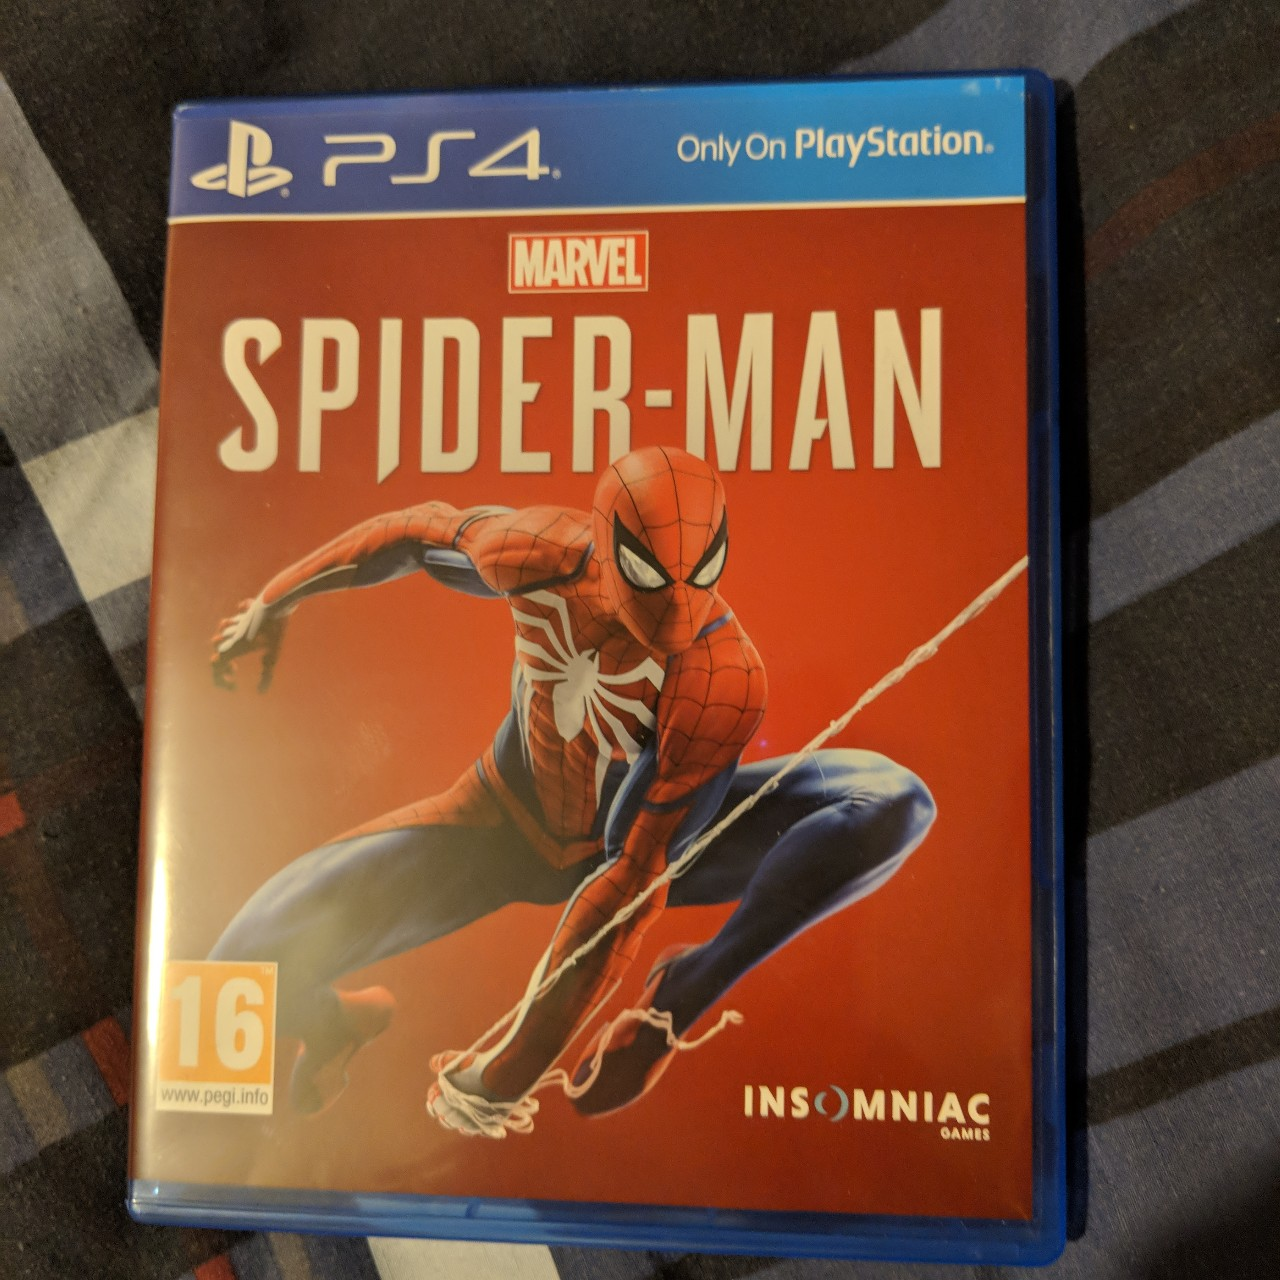 Spider-Man PS4 game for sale Near mint    - Depop